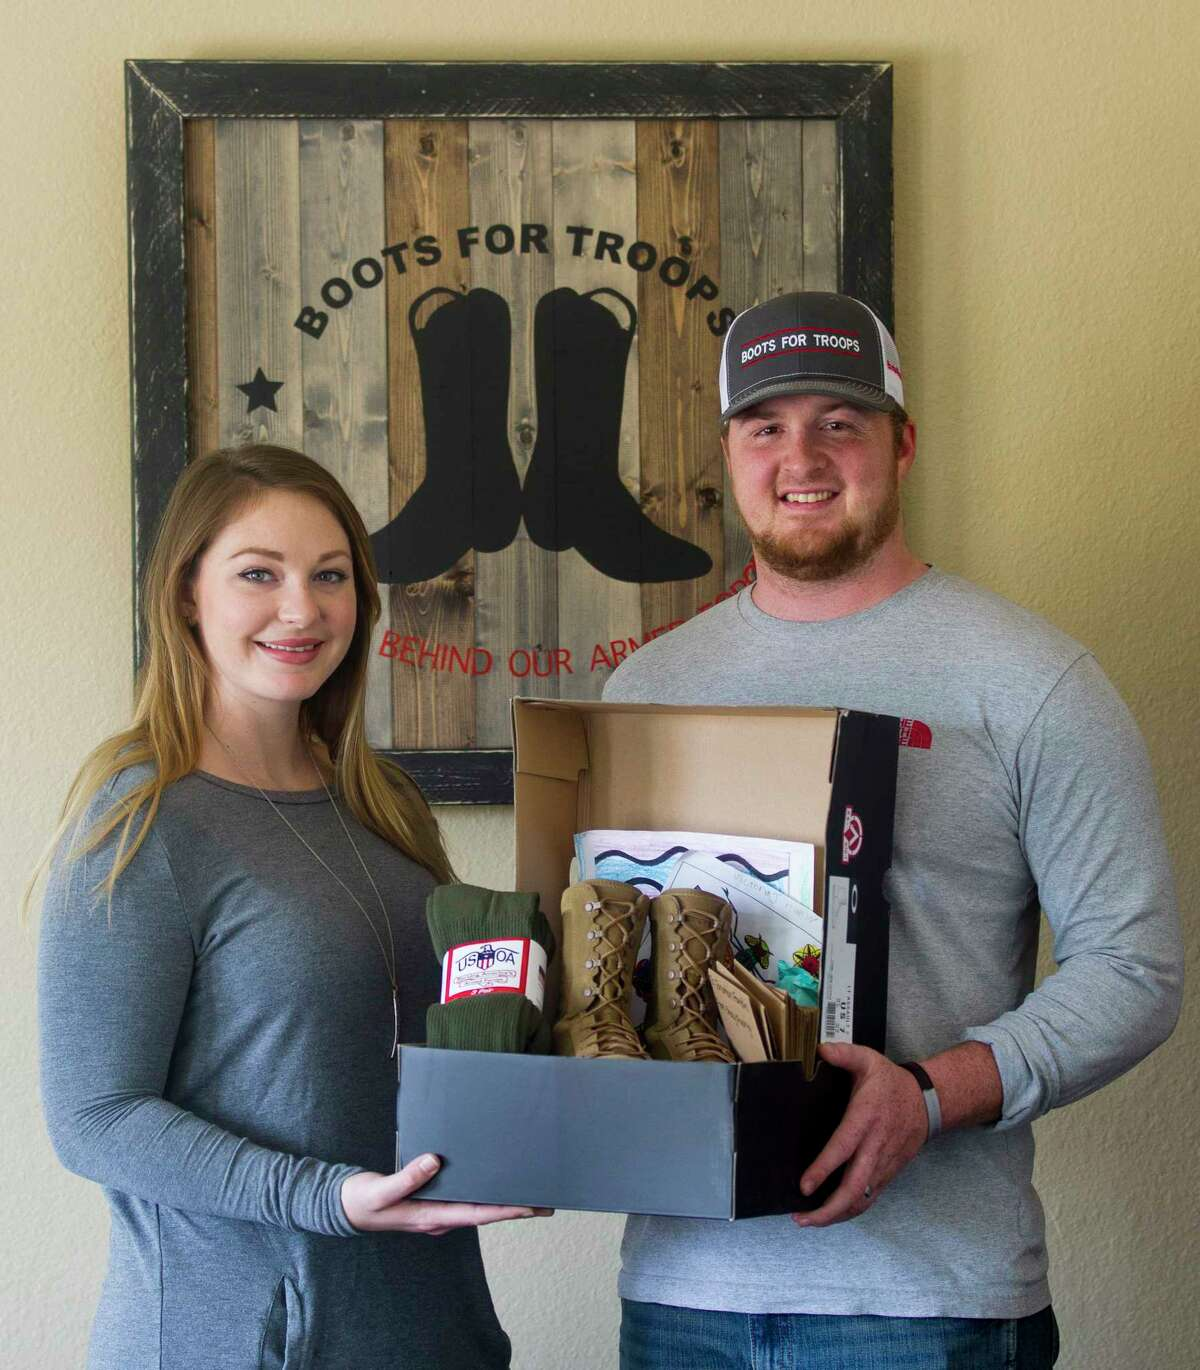 Jimmy Rogers, a U.S. Navy veteran, and his wife Lindsey started the non-profit organization Boots for Troops, which puts together personalized care packages for all military service men and women.